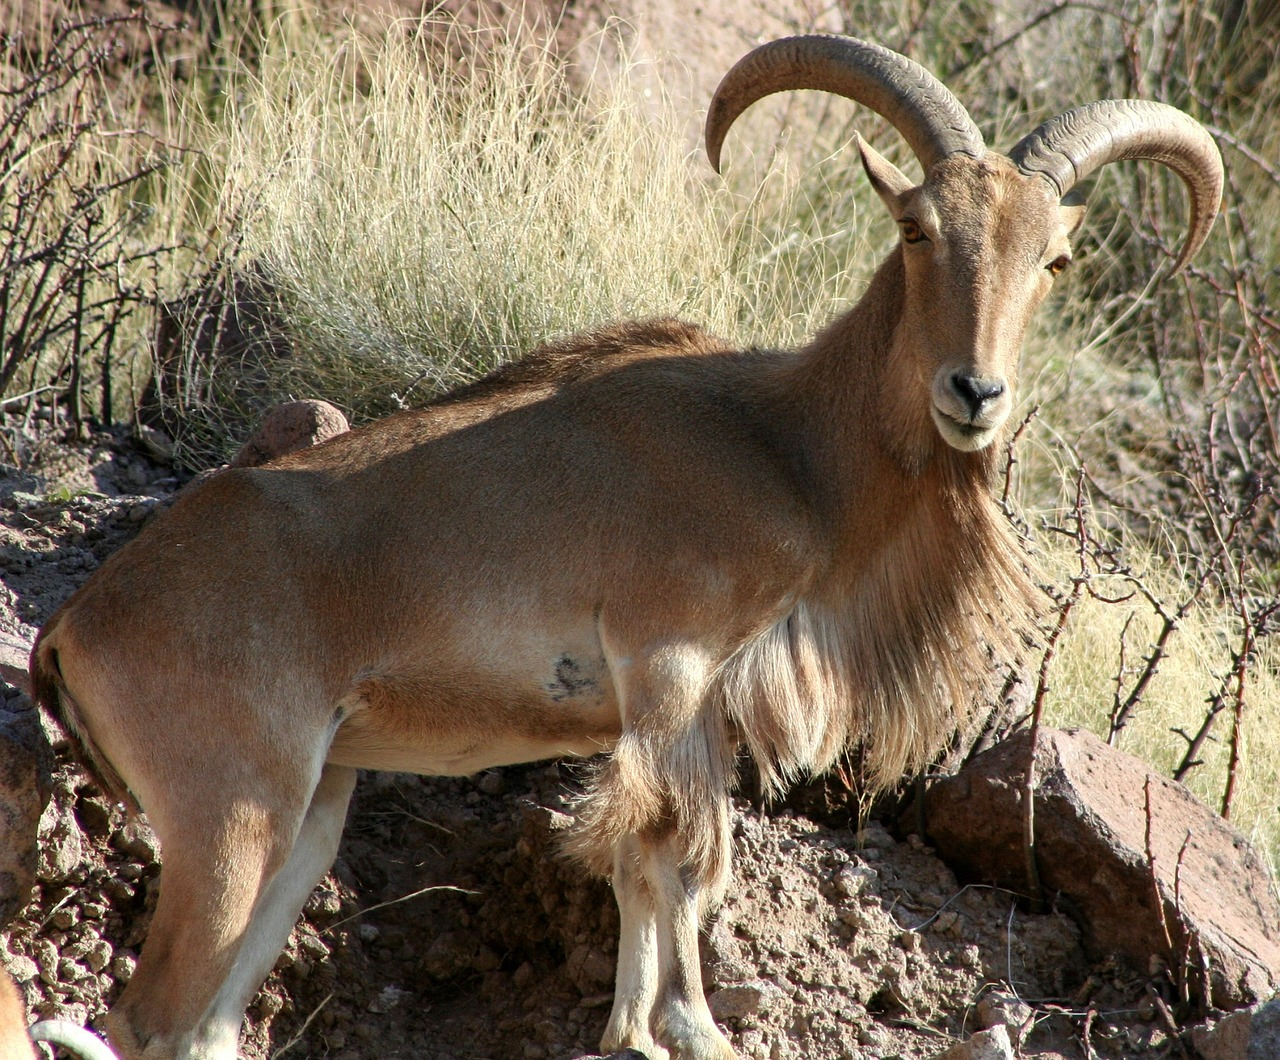 barbary-sheep-1569275_1280.jpg